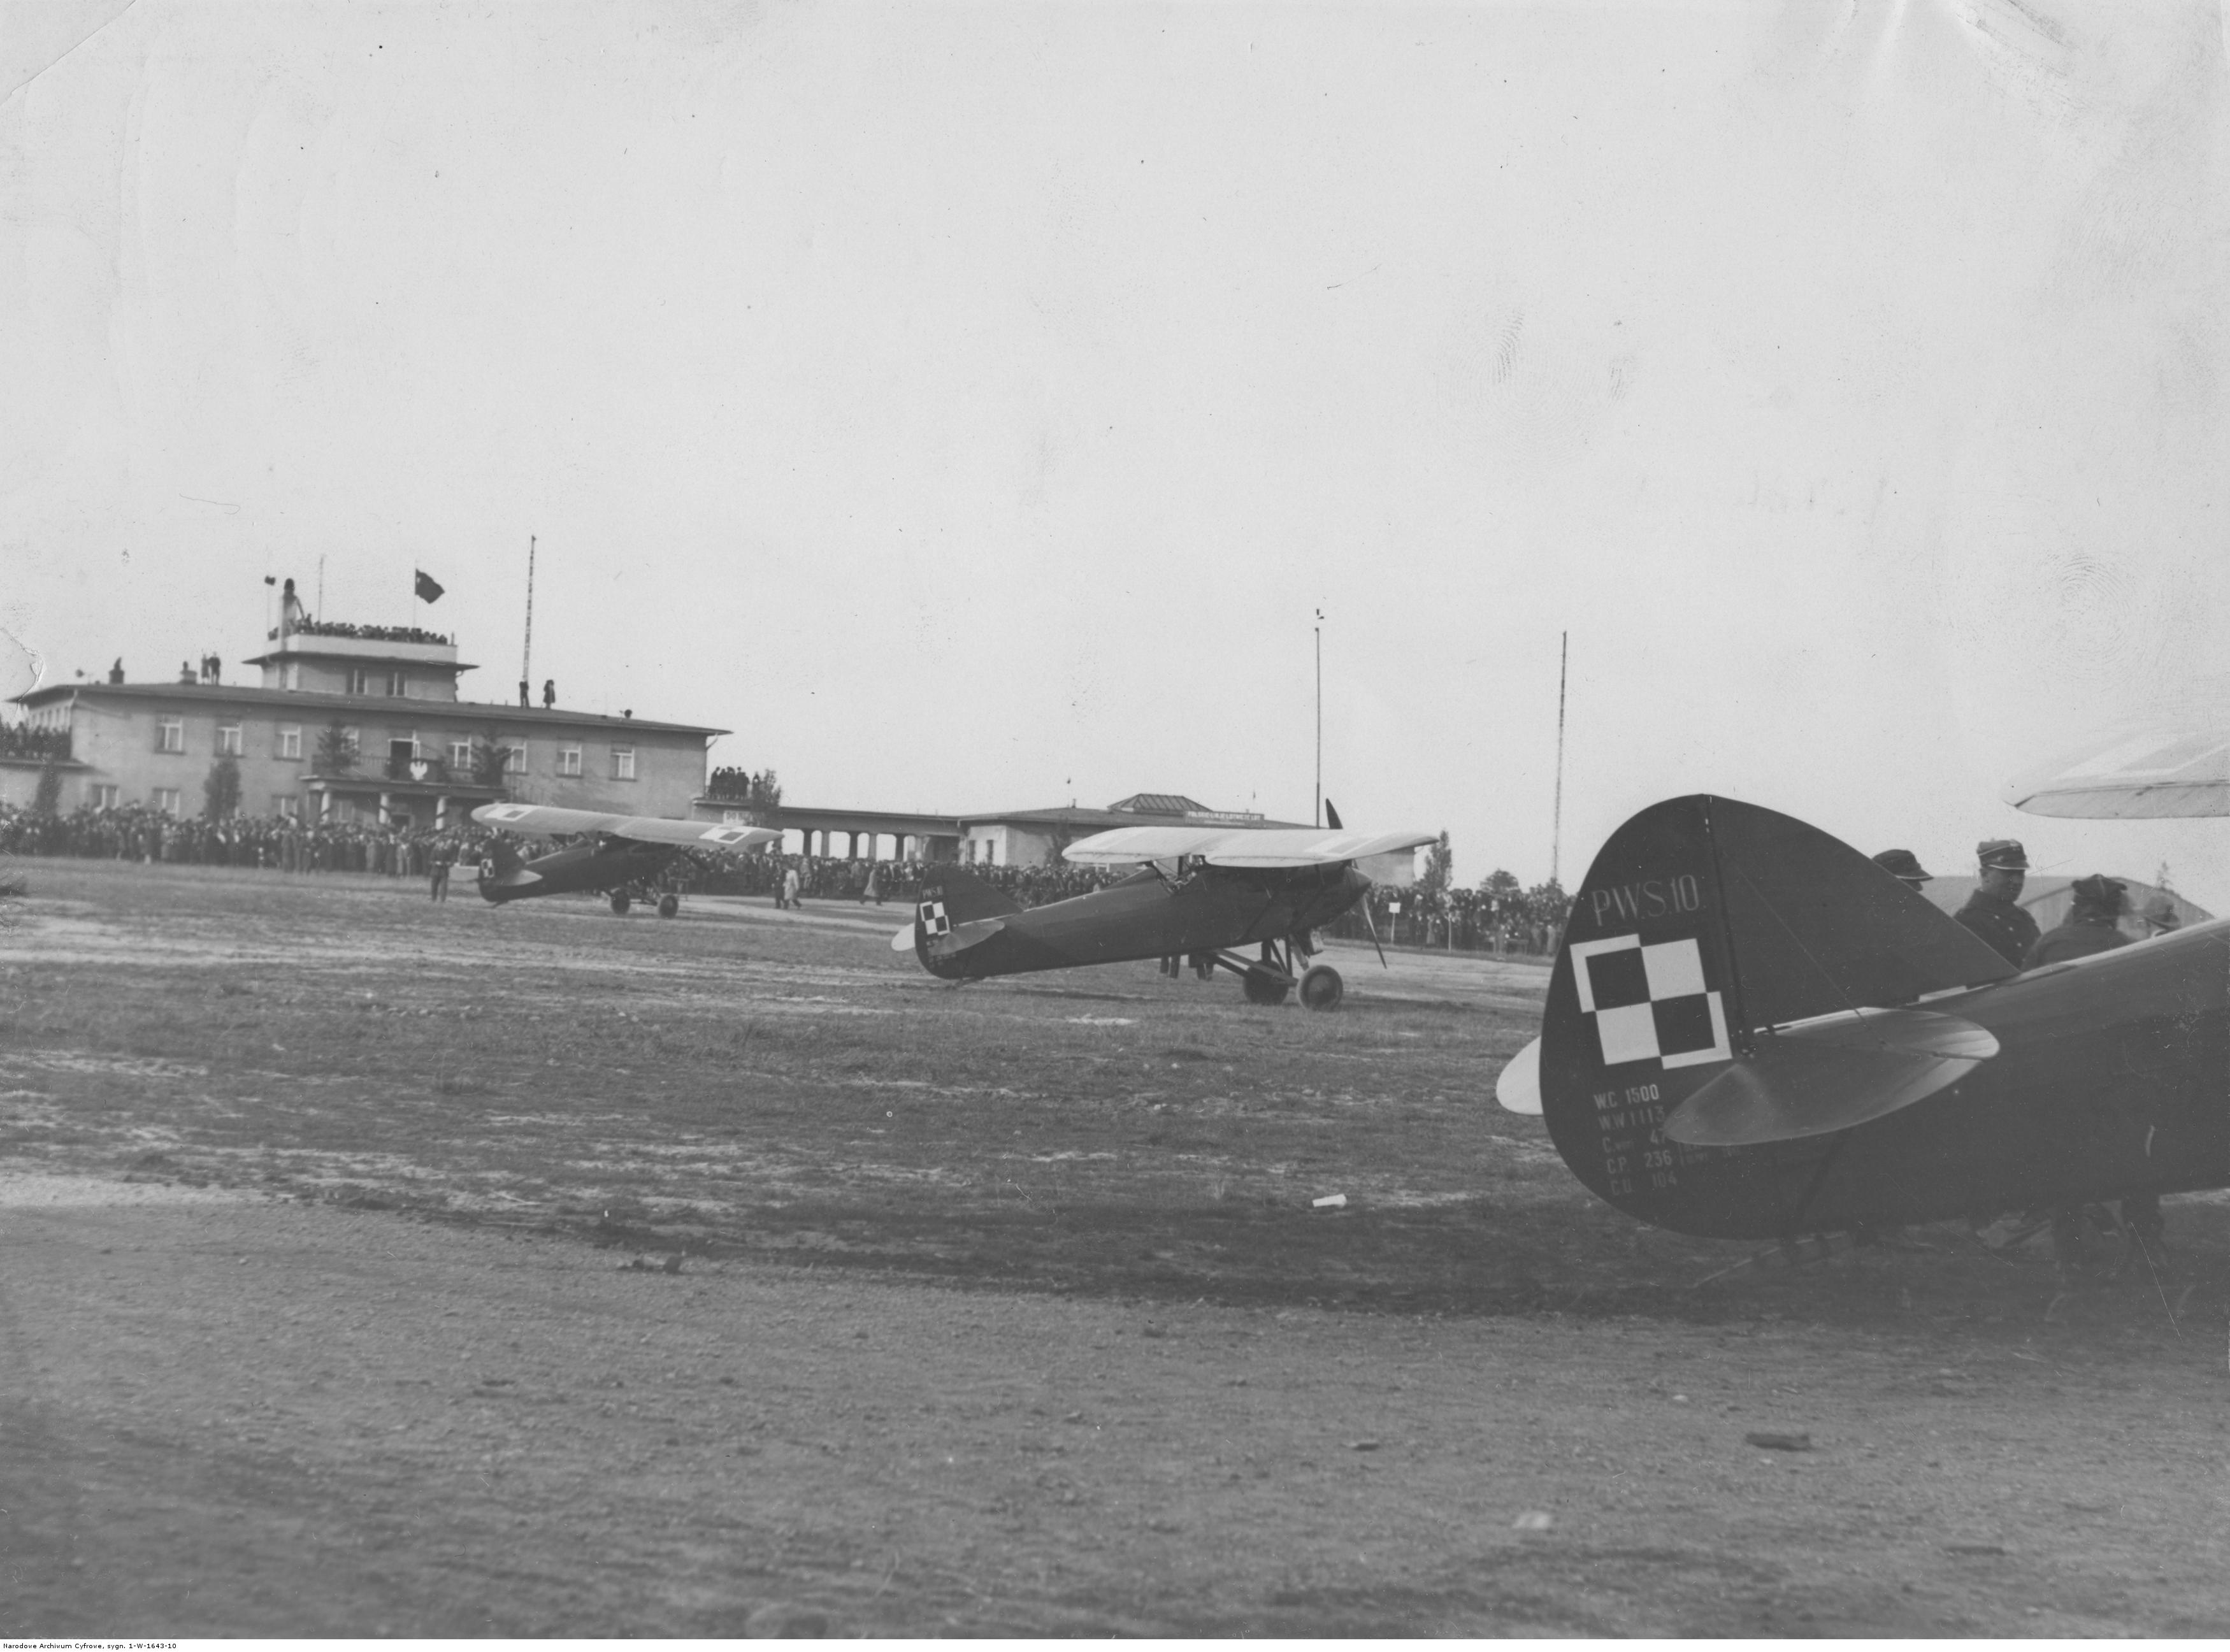 Post your WWII Aeroplanes/Bomber Photos   - Page 62 - Histomil com